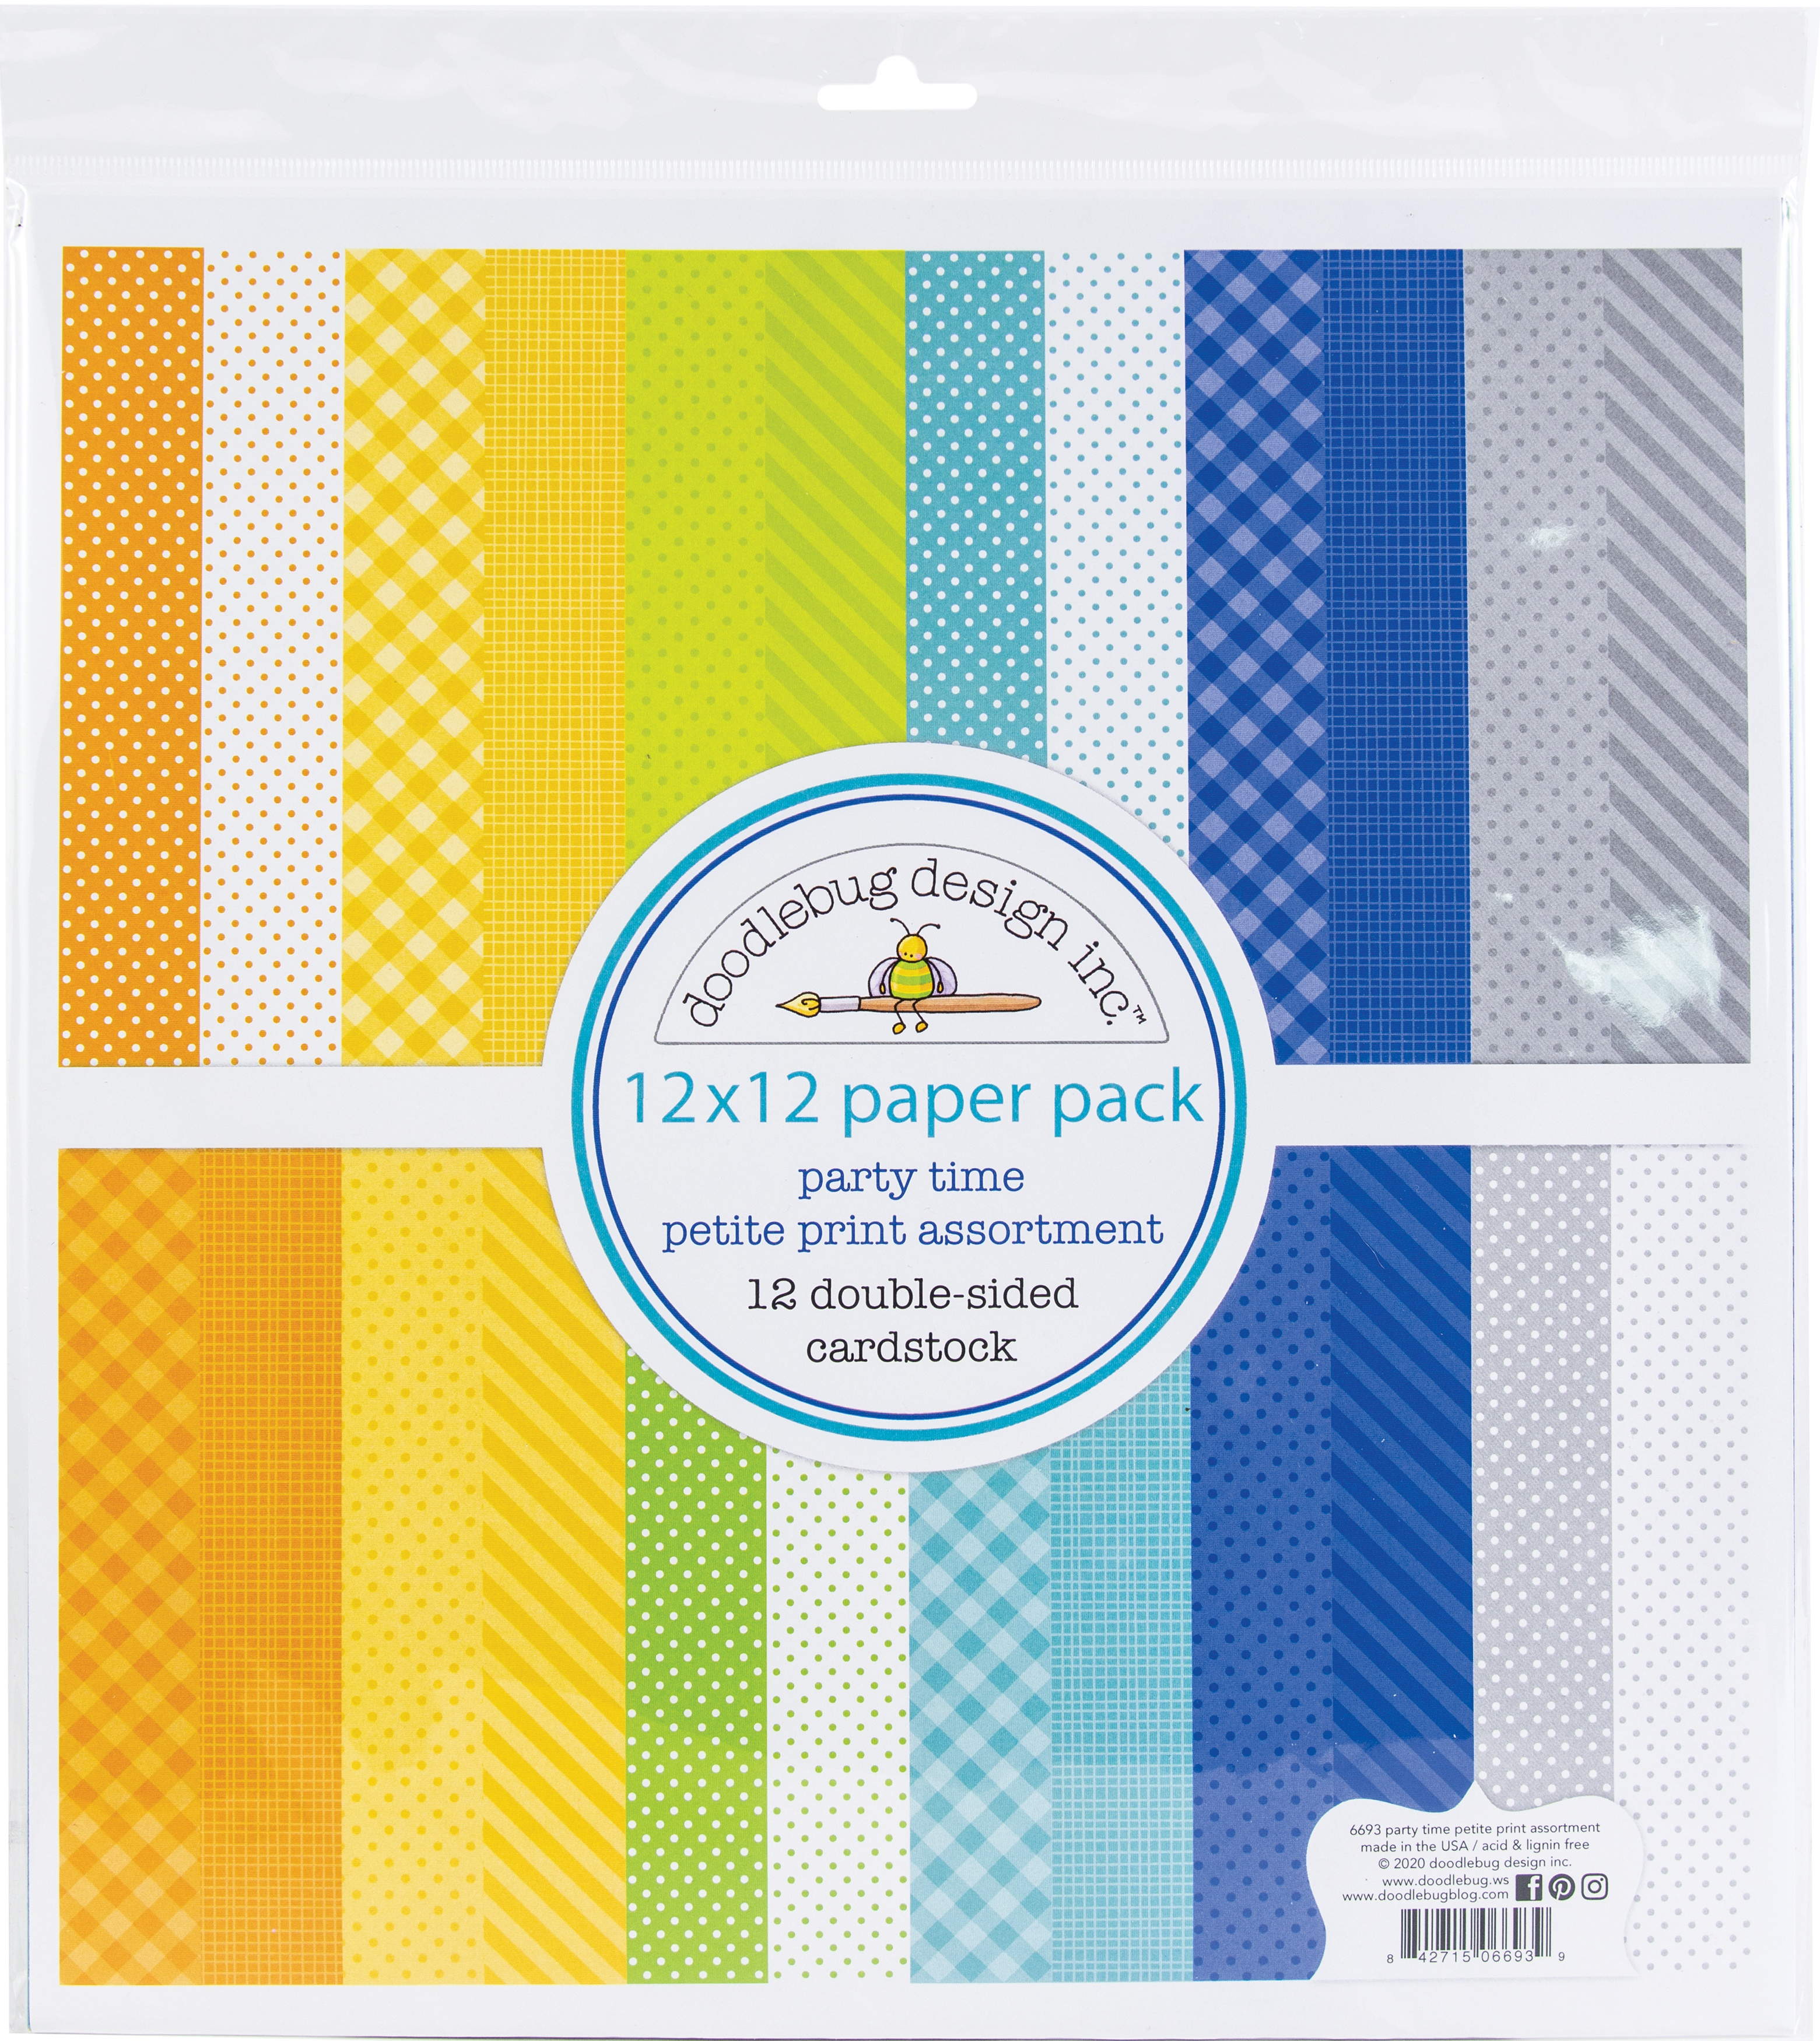 Doodlebug Petite Prints Double-Sided Cardstock 12X12 12/Pk-Party Time 12 Designs/1 Each